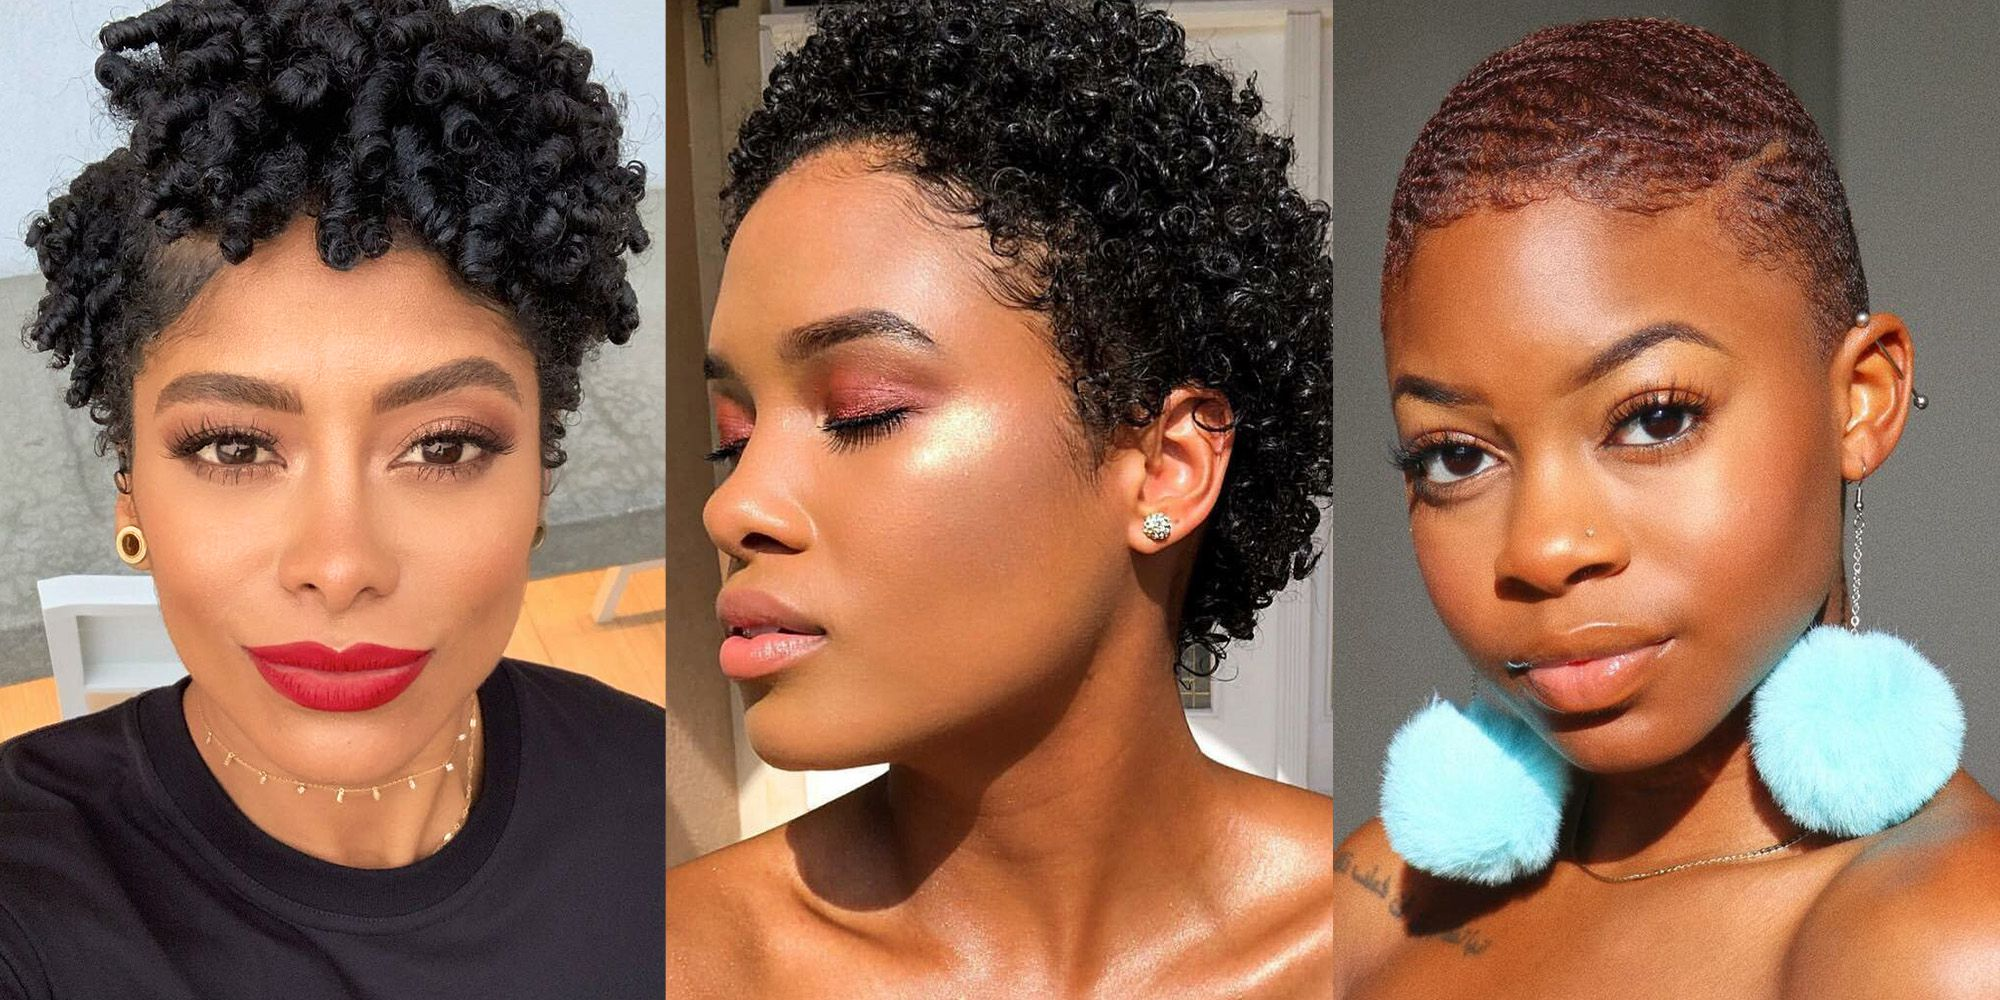 14 Short Natural Hairstyles - The Best Hairstyles for Short Natural Hair